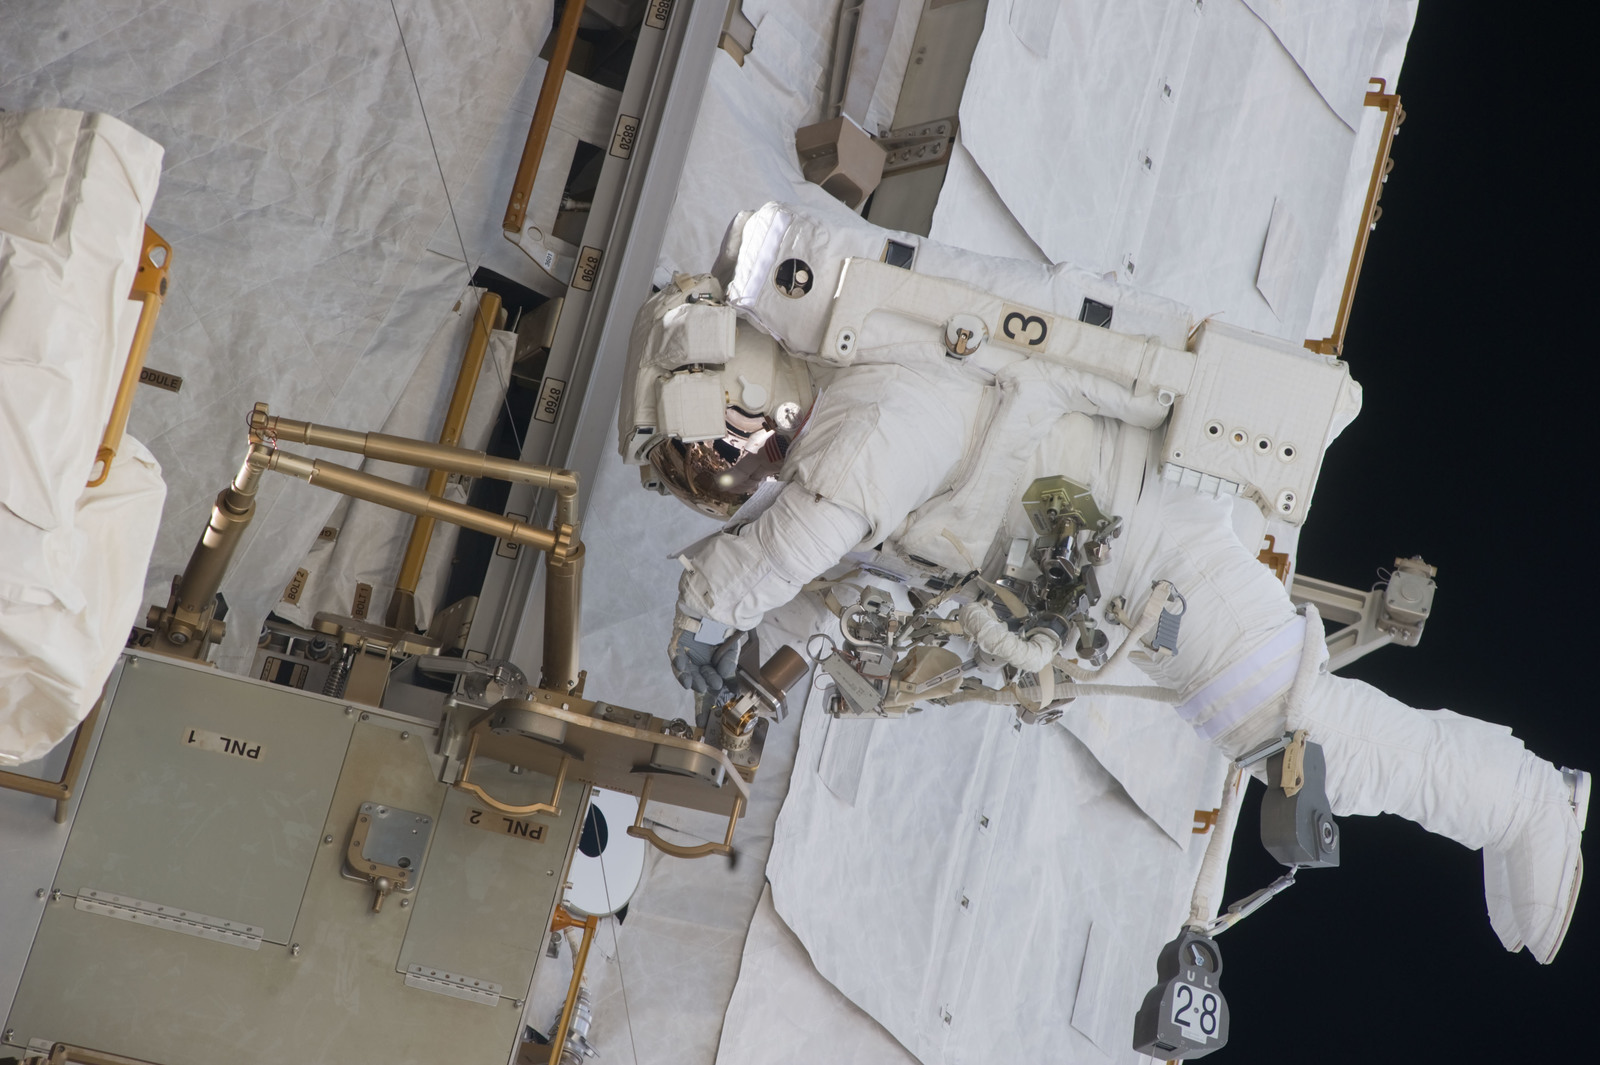 S134E009631 - STS-134 - View of STS-134 MS Fincke during EVA-4